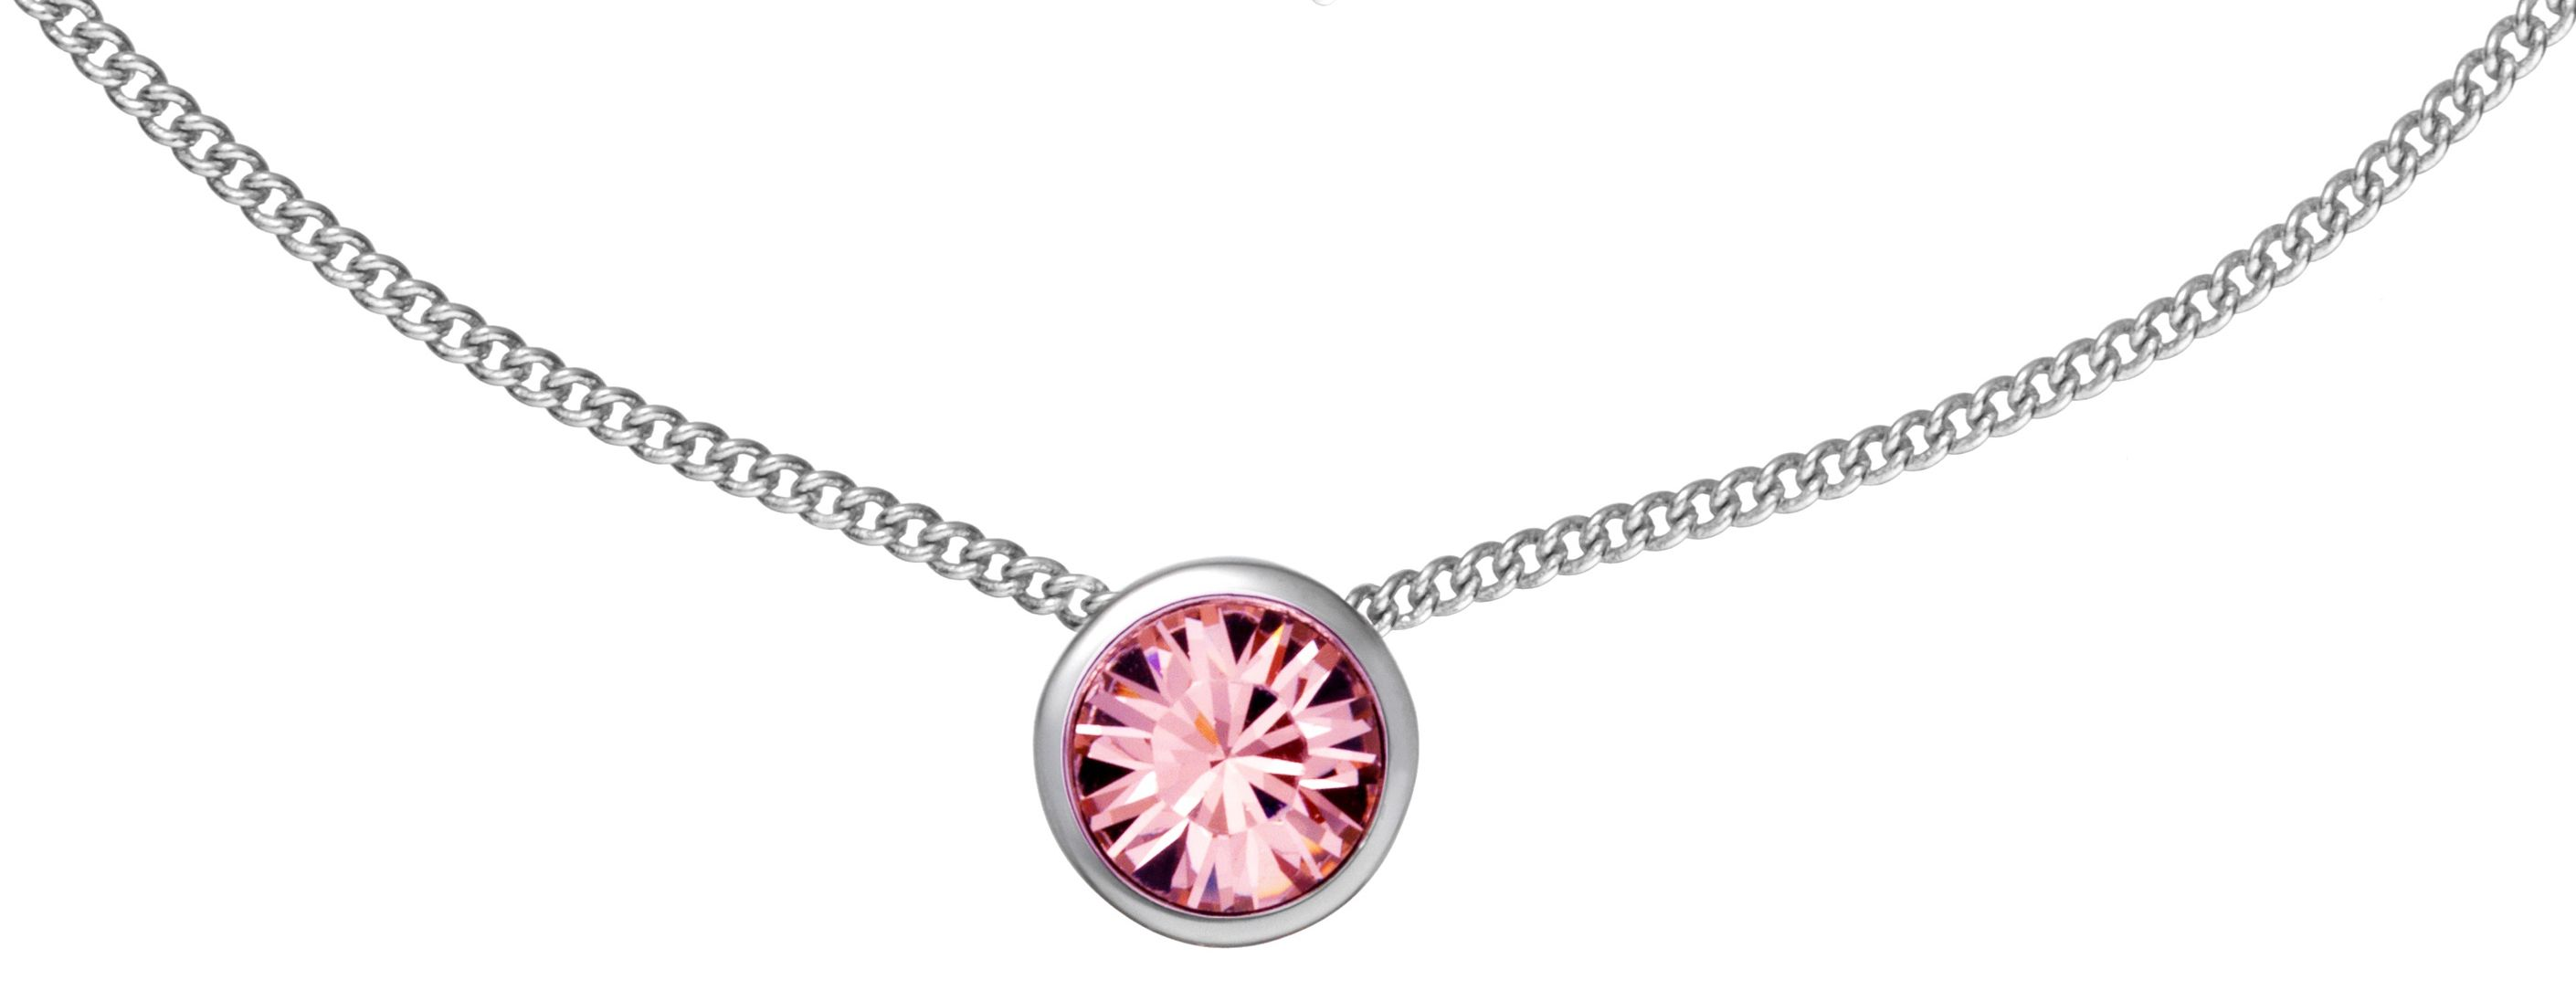 Swarovski 18Ct White Gold Light Pink Pendant